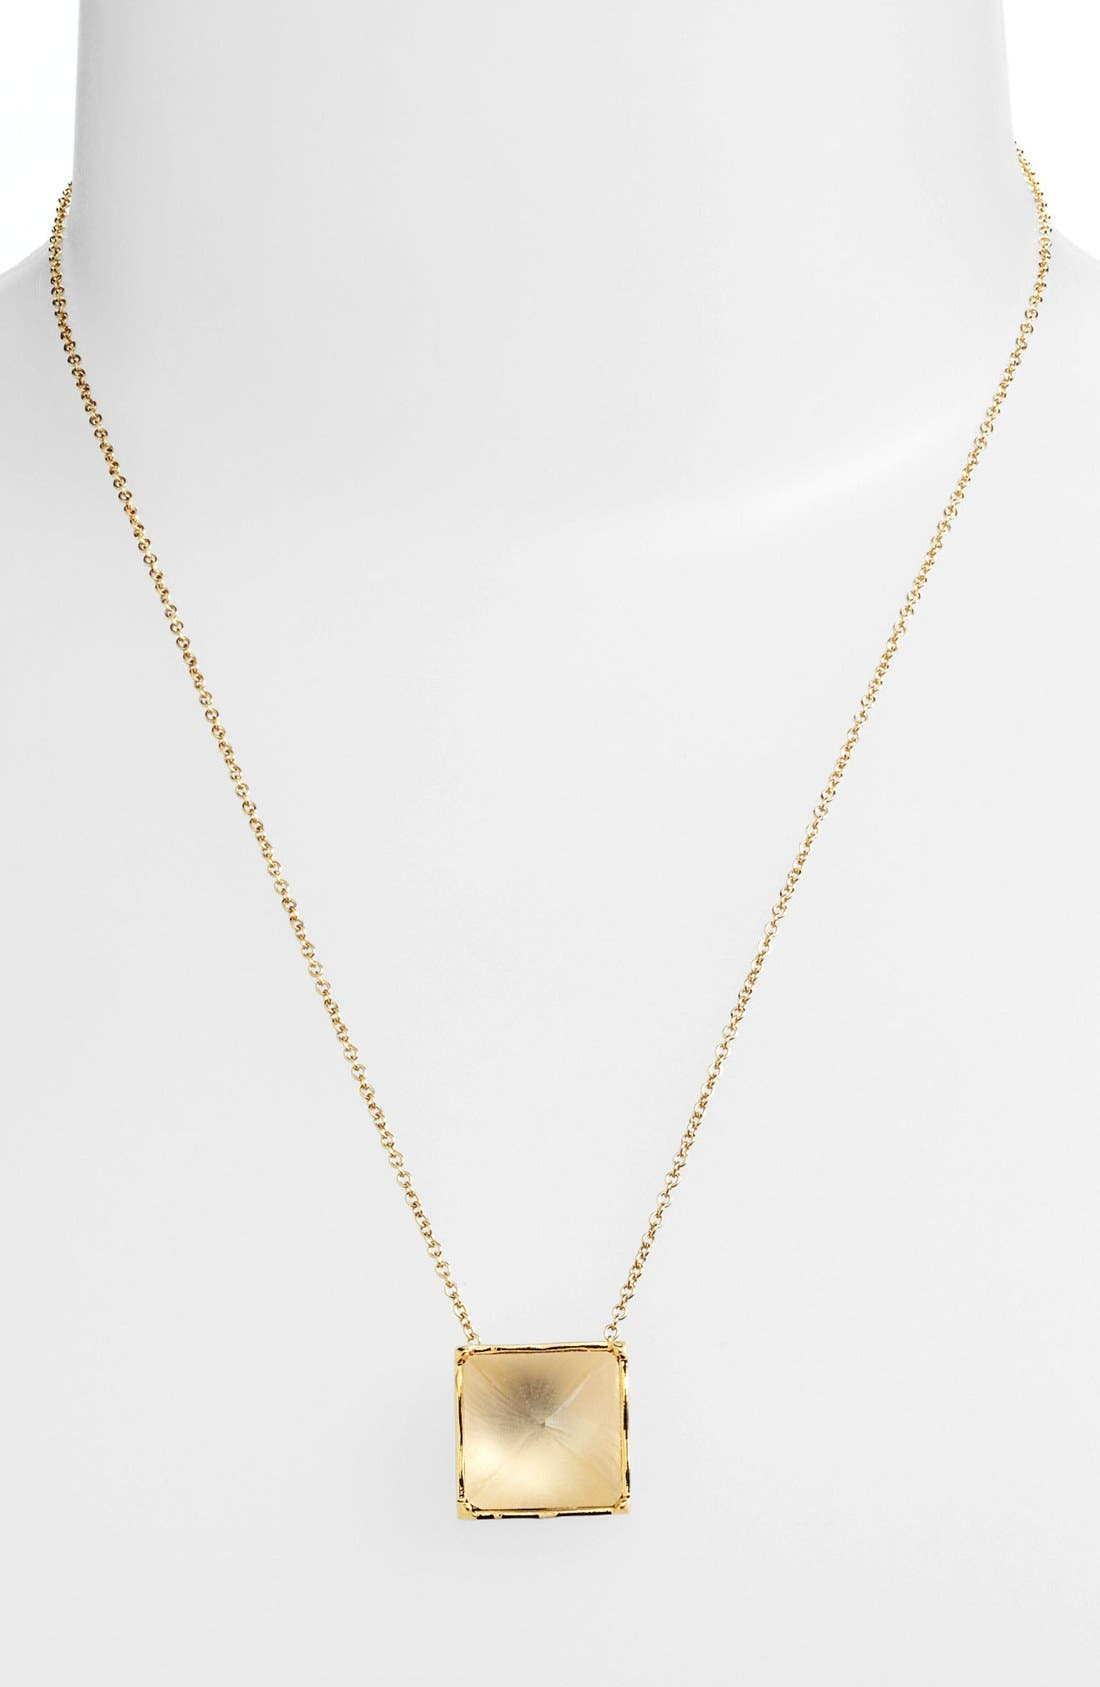 Alternate Image 1 Selected - Alexis Bittar 'Lucite®' Pyramid Pendant Necklace